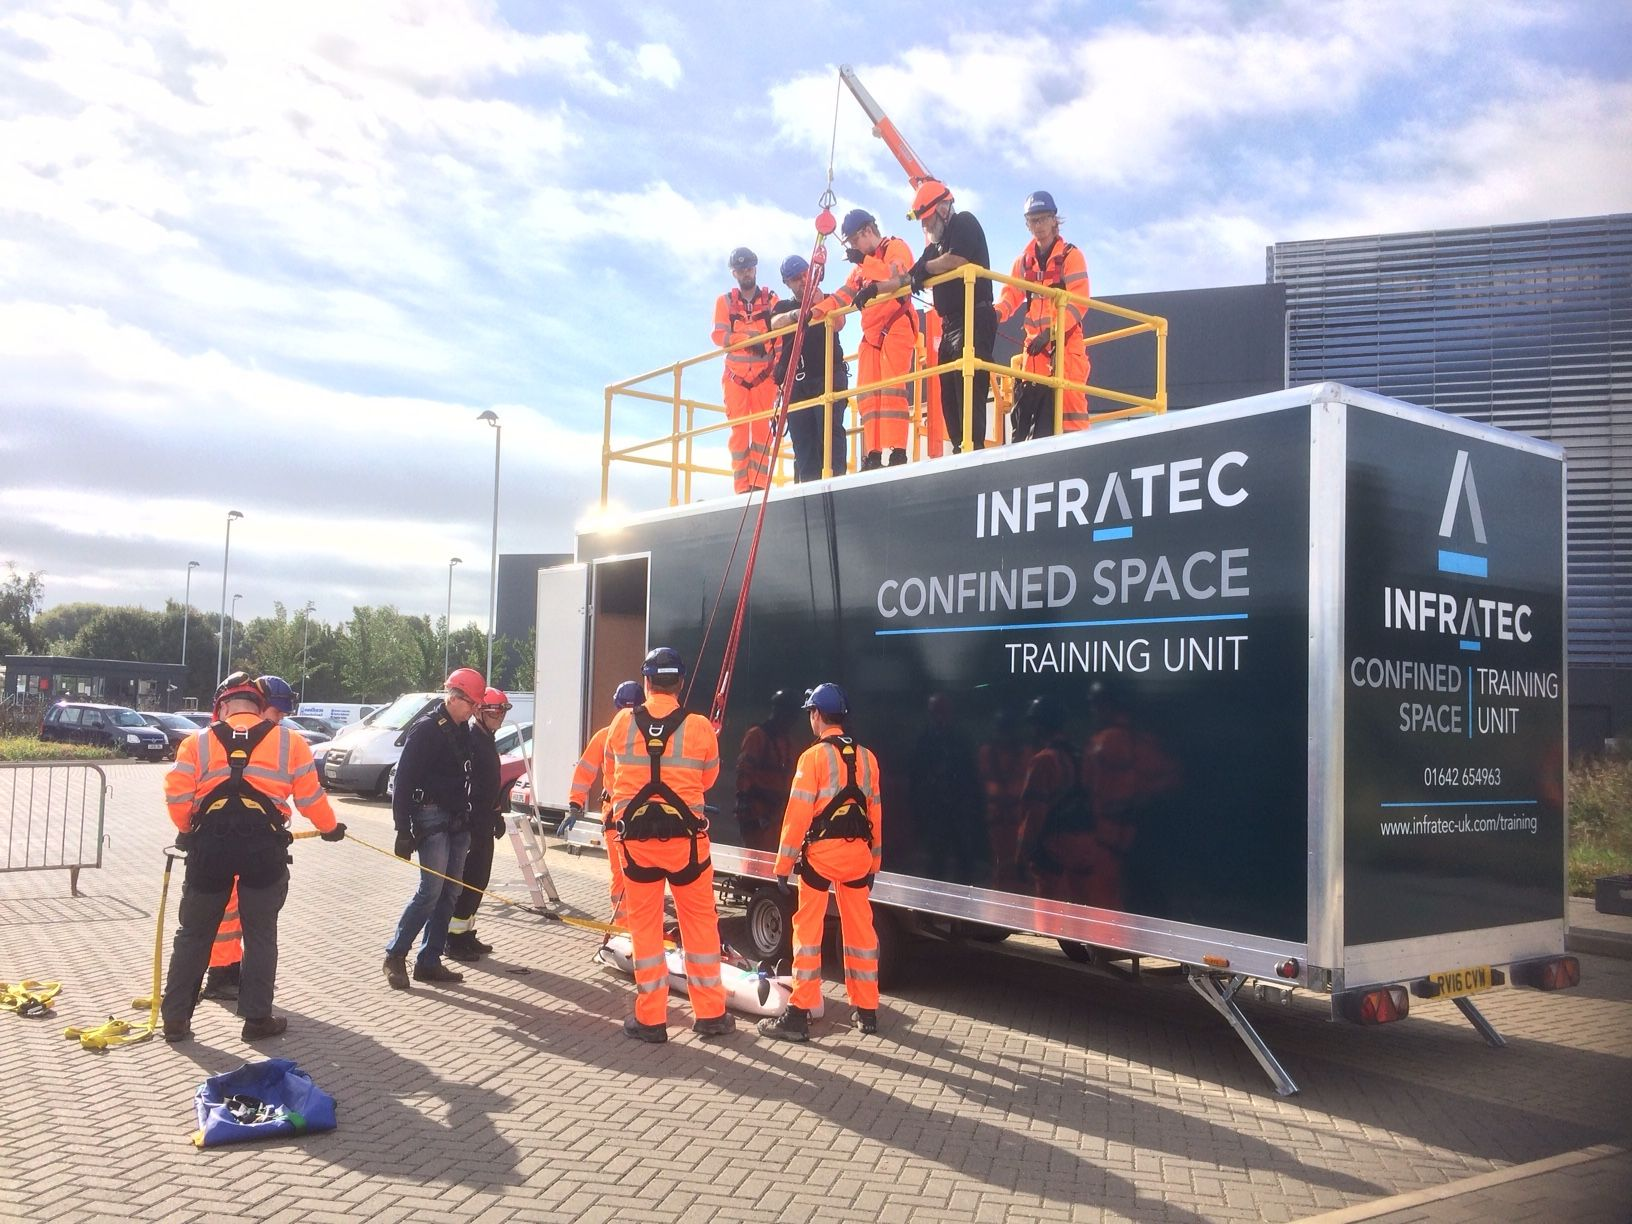 infratec confined space training unit